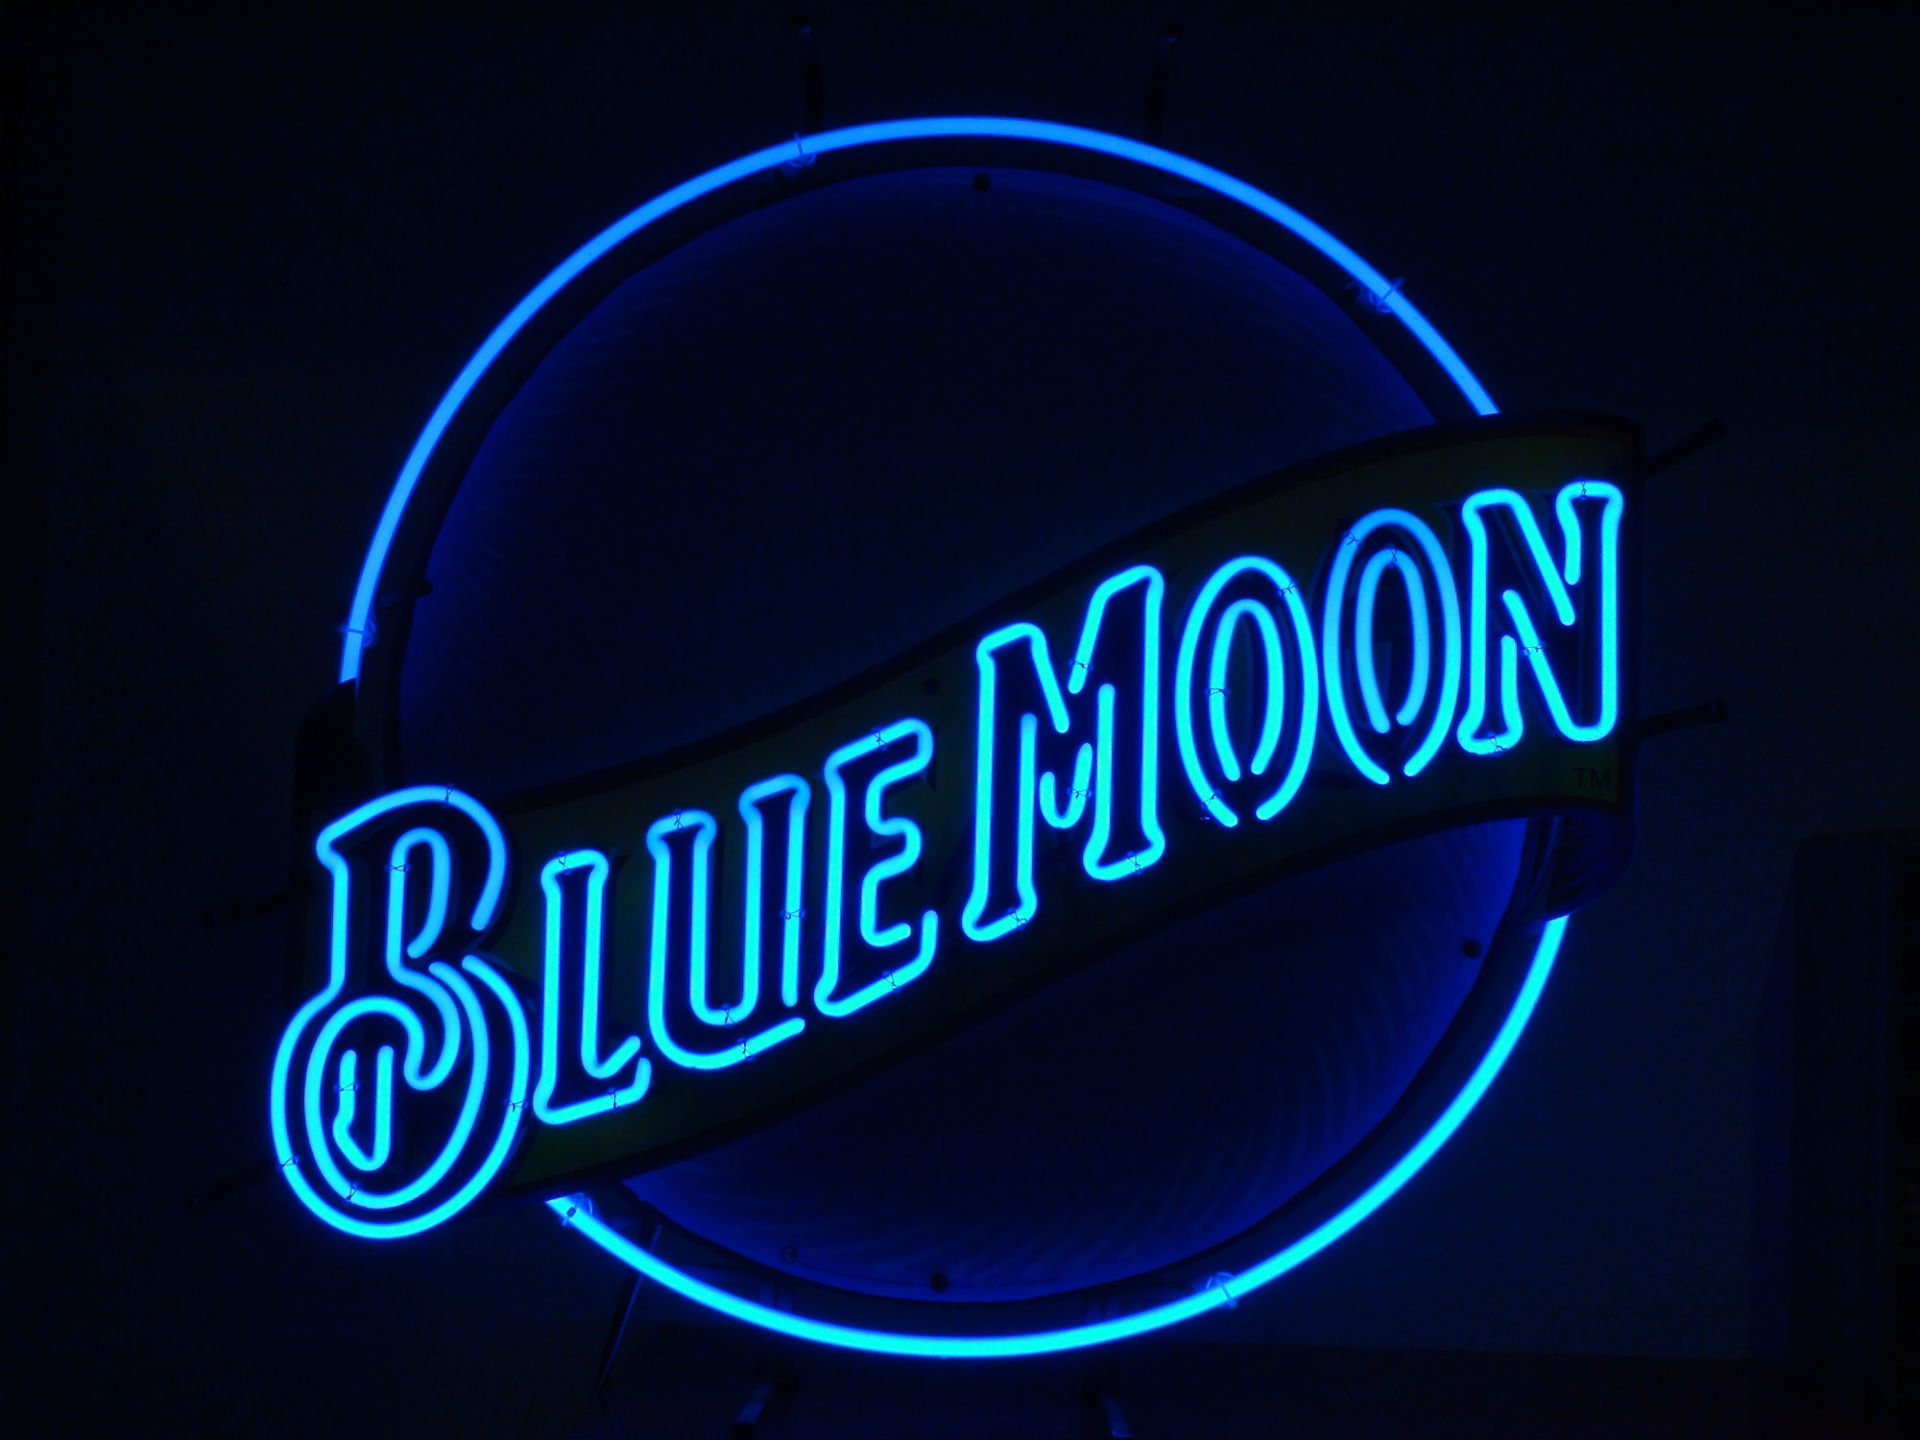 blue moon neon sign wallpaper 66621